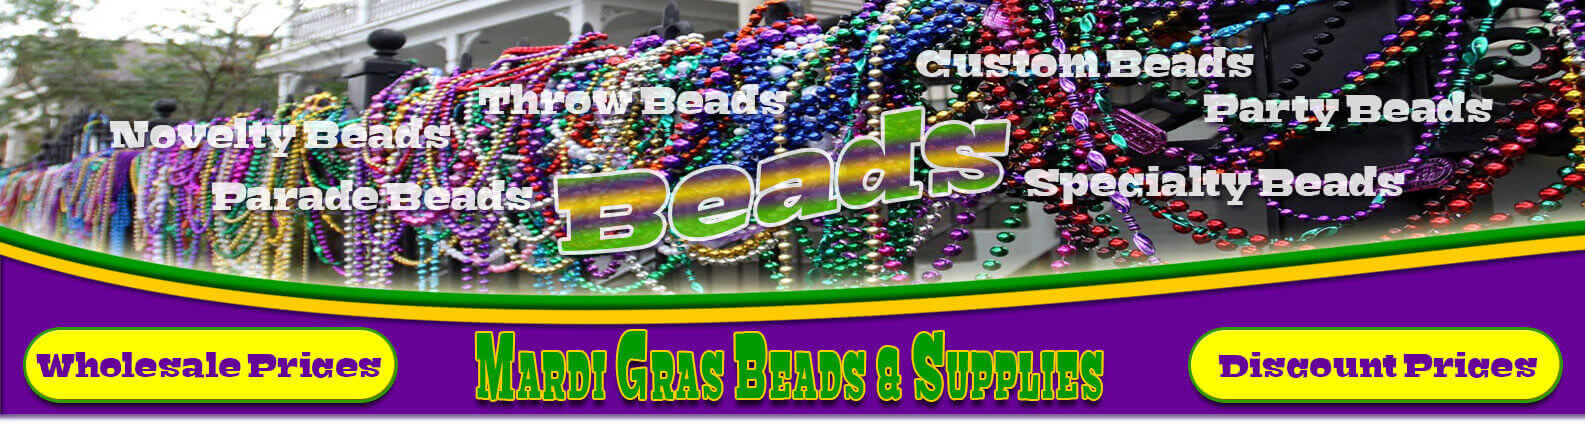 Mardi Gras Beads  for All Holiday Parades & Parties!